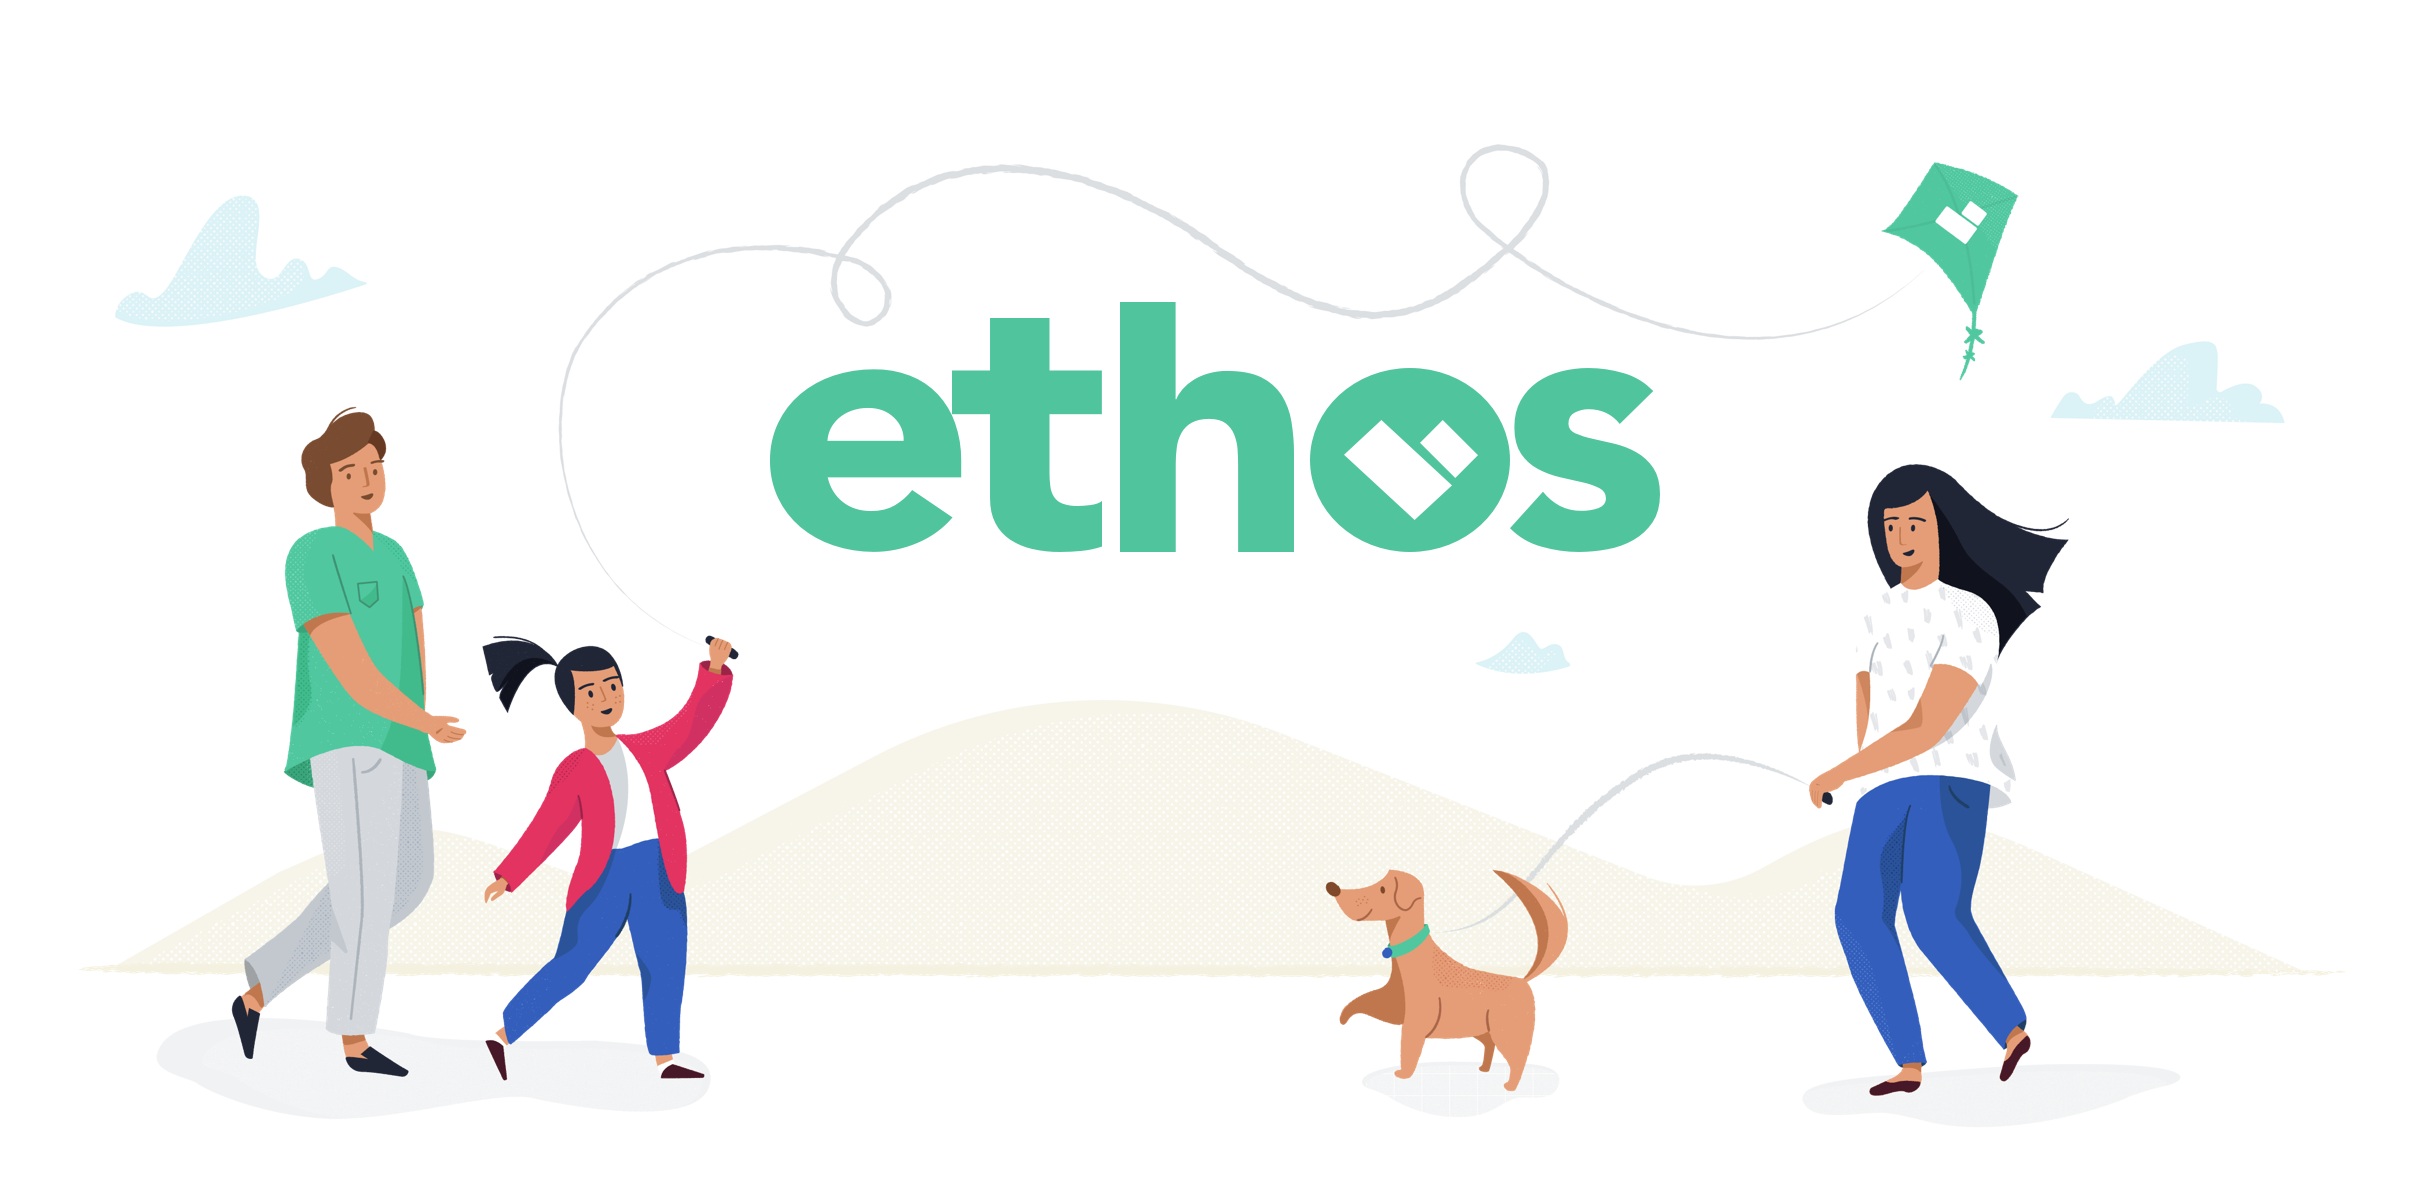 ethos term life insurance